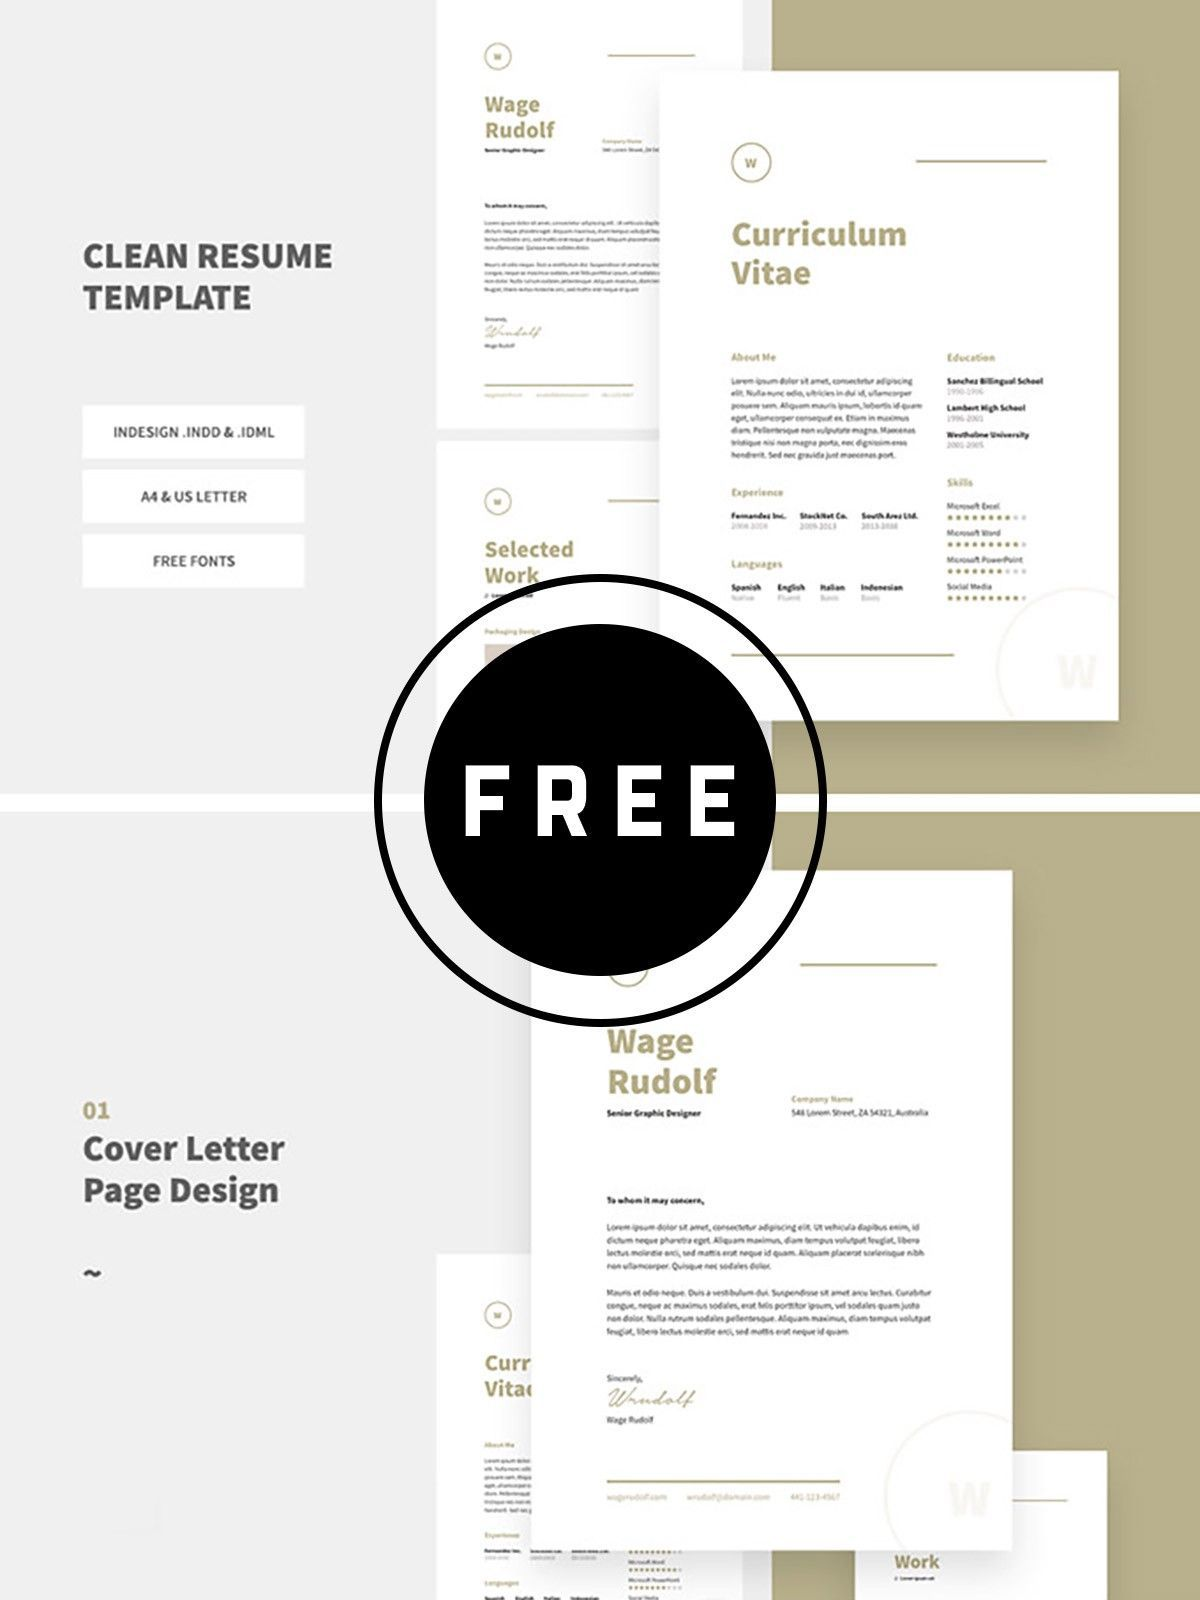 100 free best resume templates for 2019 C vita 100